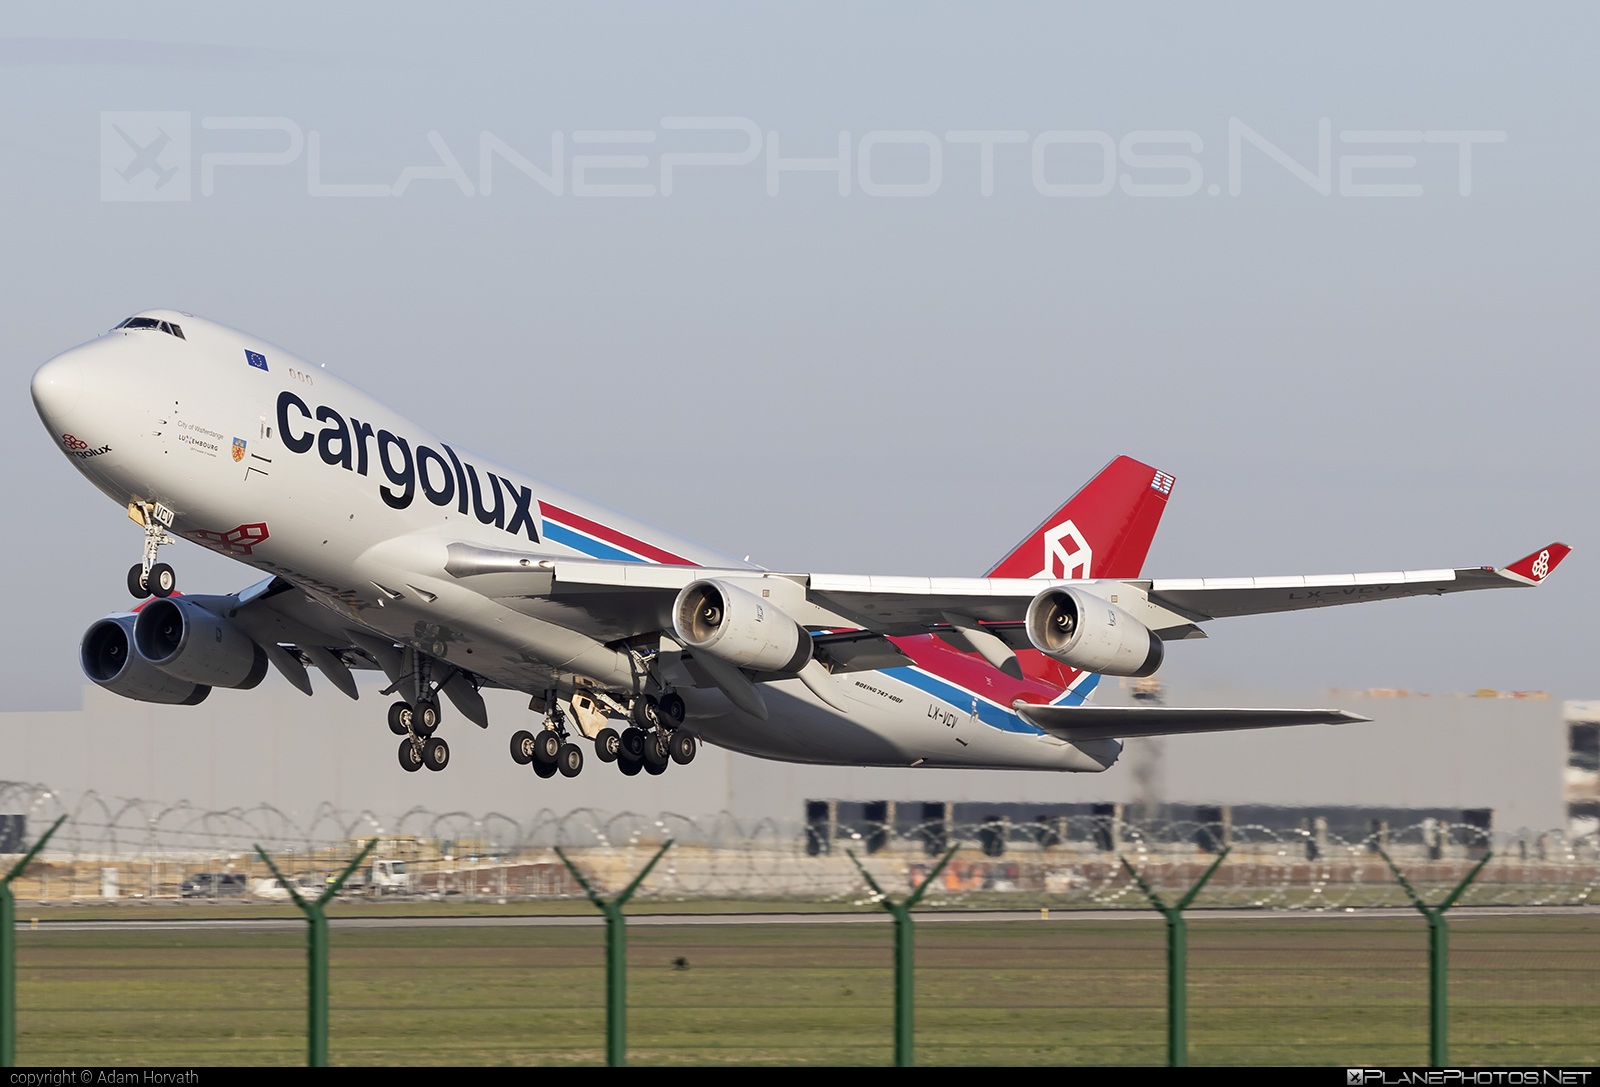 Boeing 747-400F - LX-VCV operated by Cargolux Airlines International #b747 #boeing #boeing747 #cargolux #jumbo